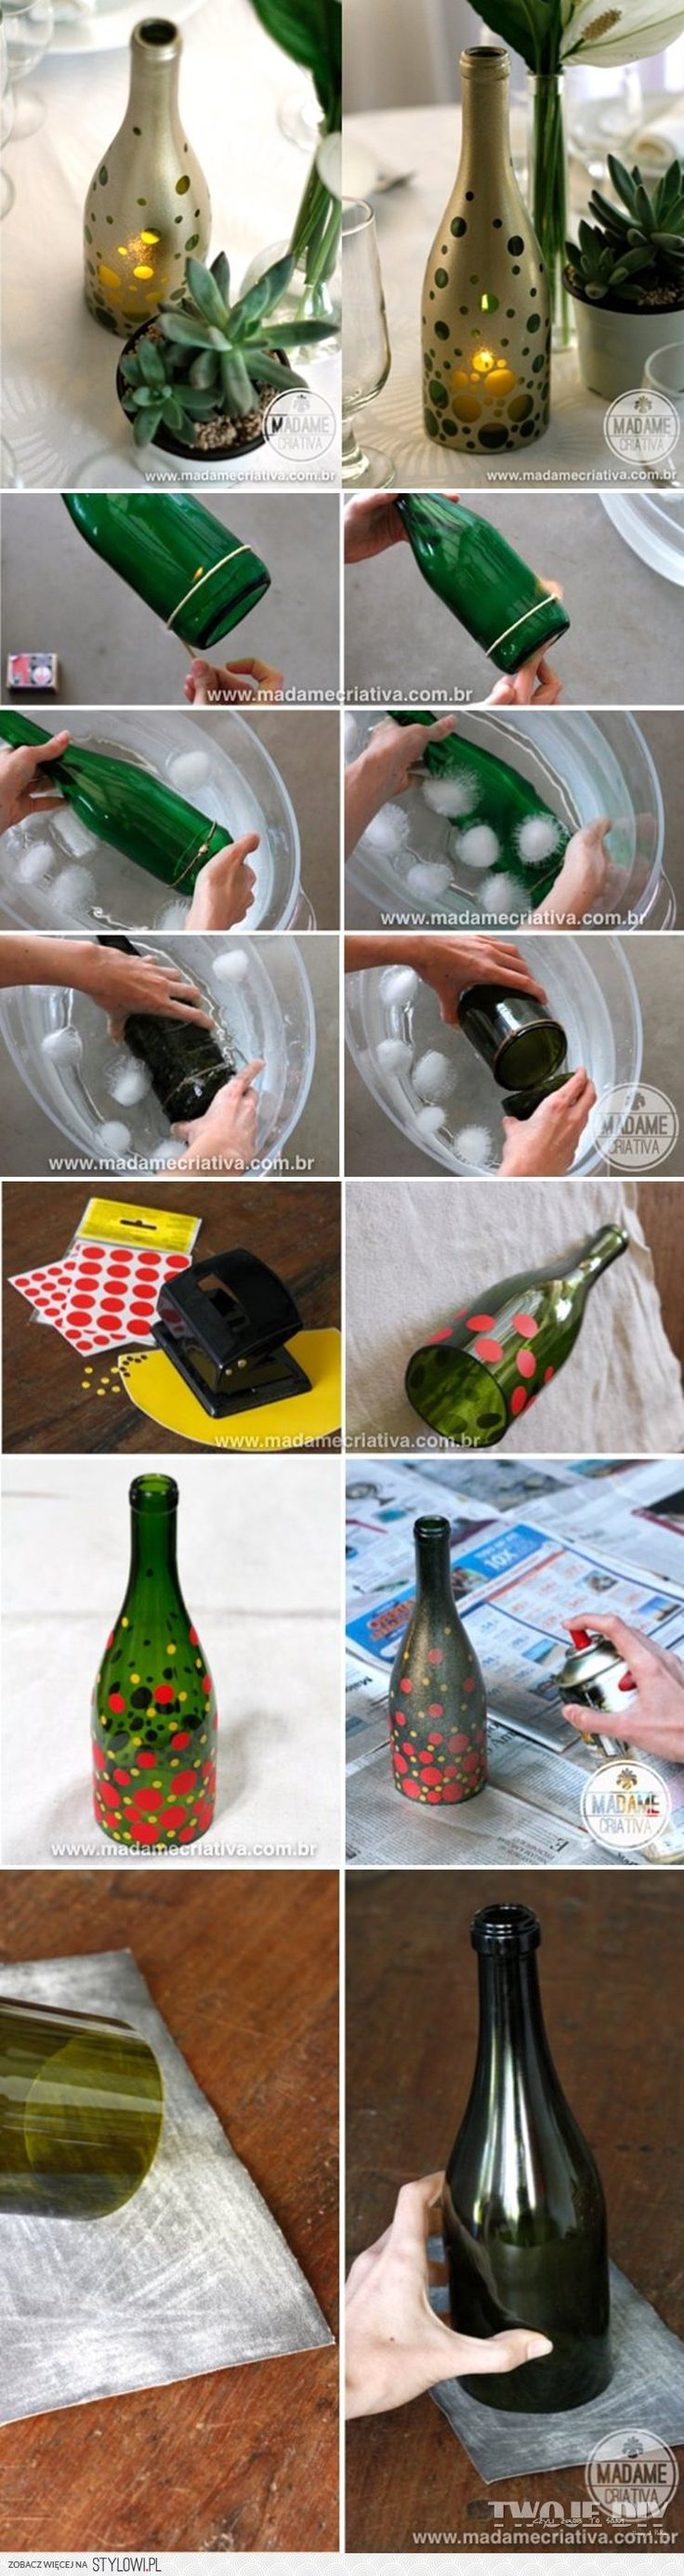 How to cut a winebottle